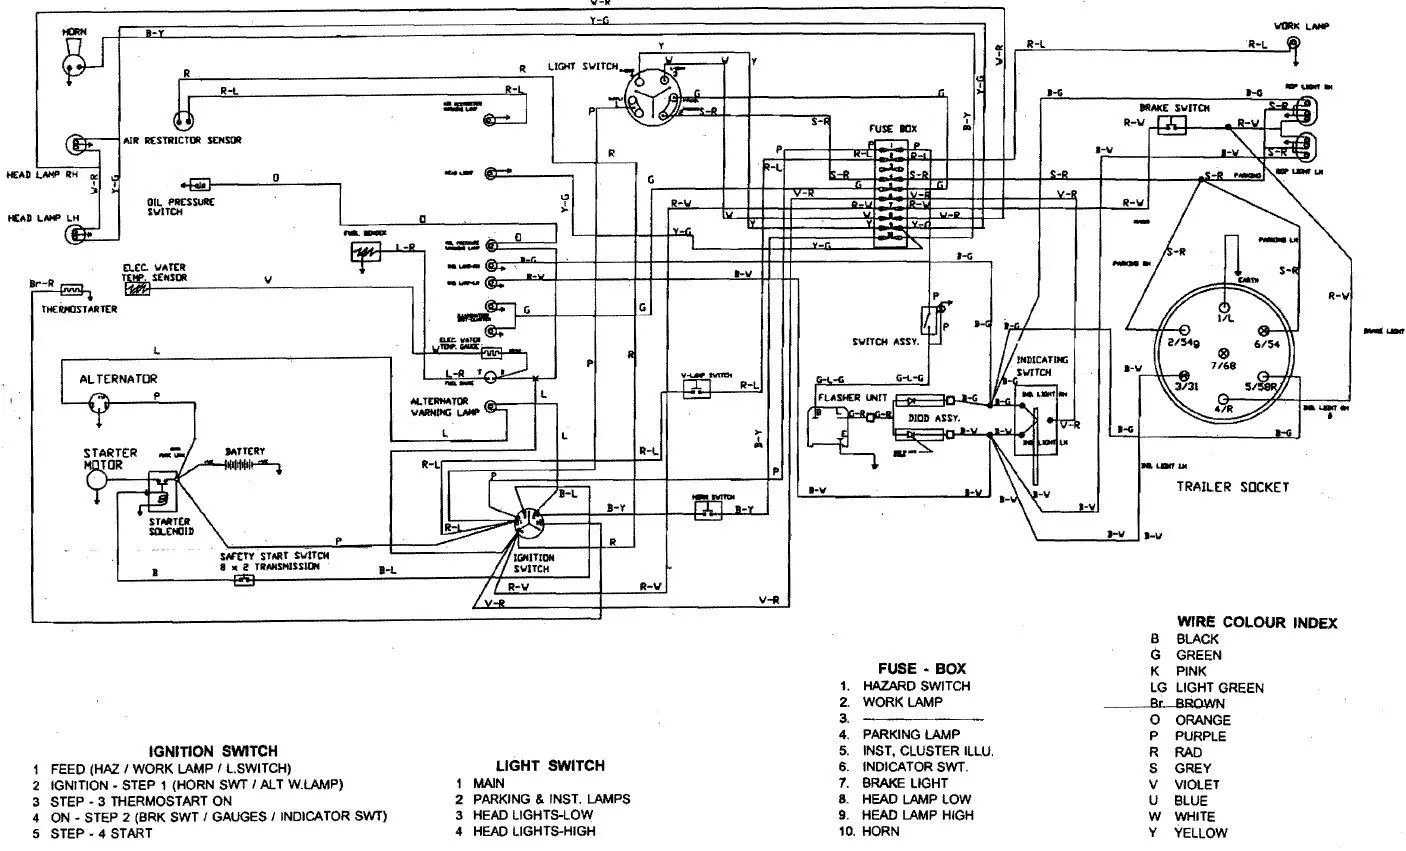 hight resolution of starter switch wiring diagram for kubota l175